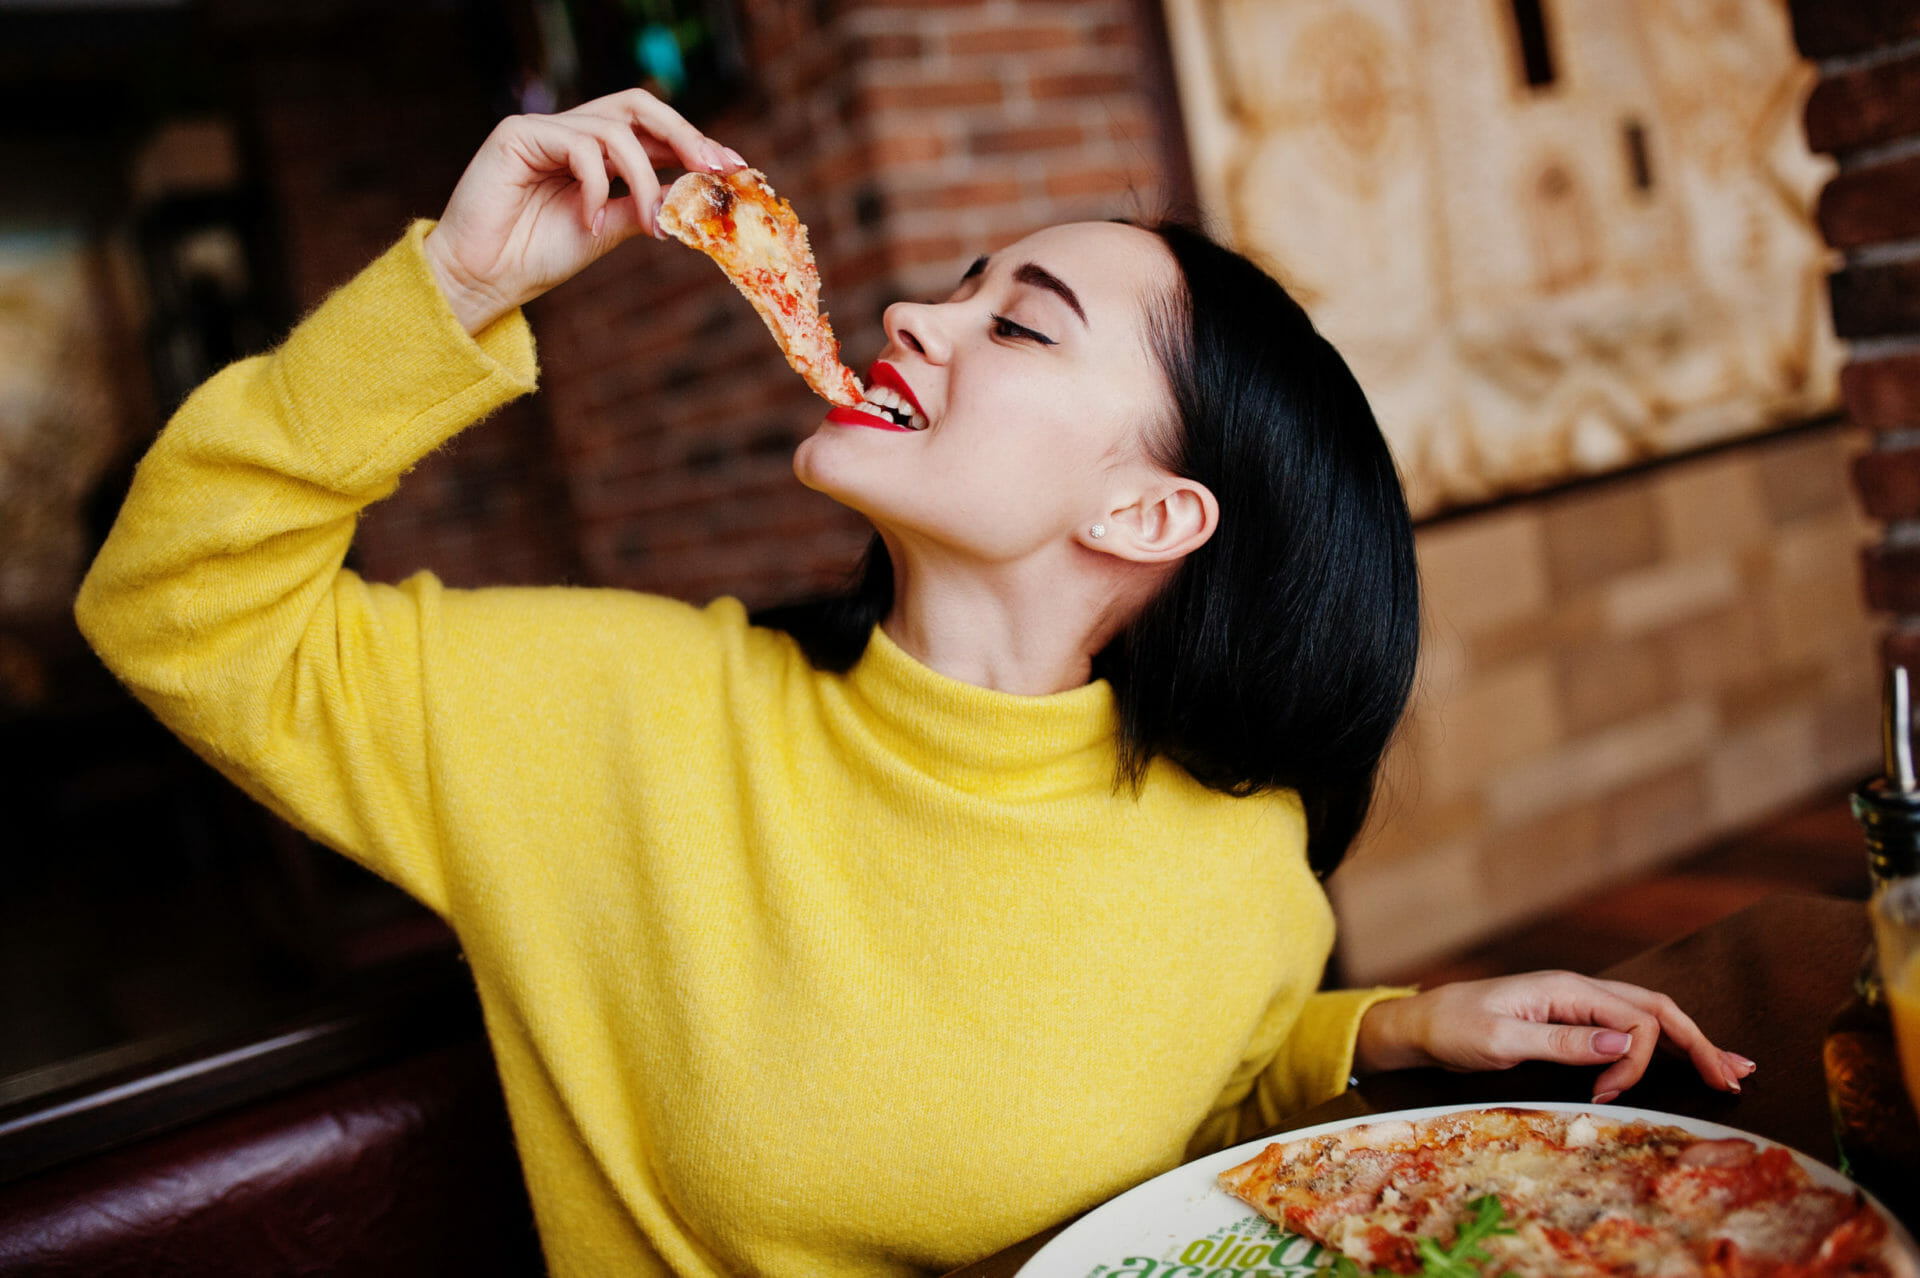 Is Pizza Healthy or Unhealthy?